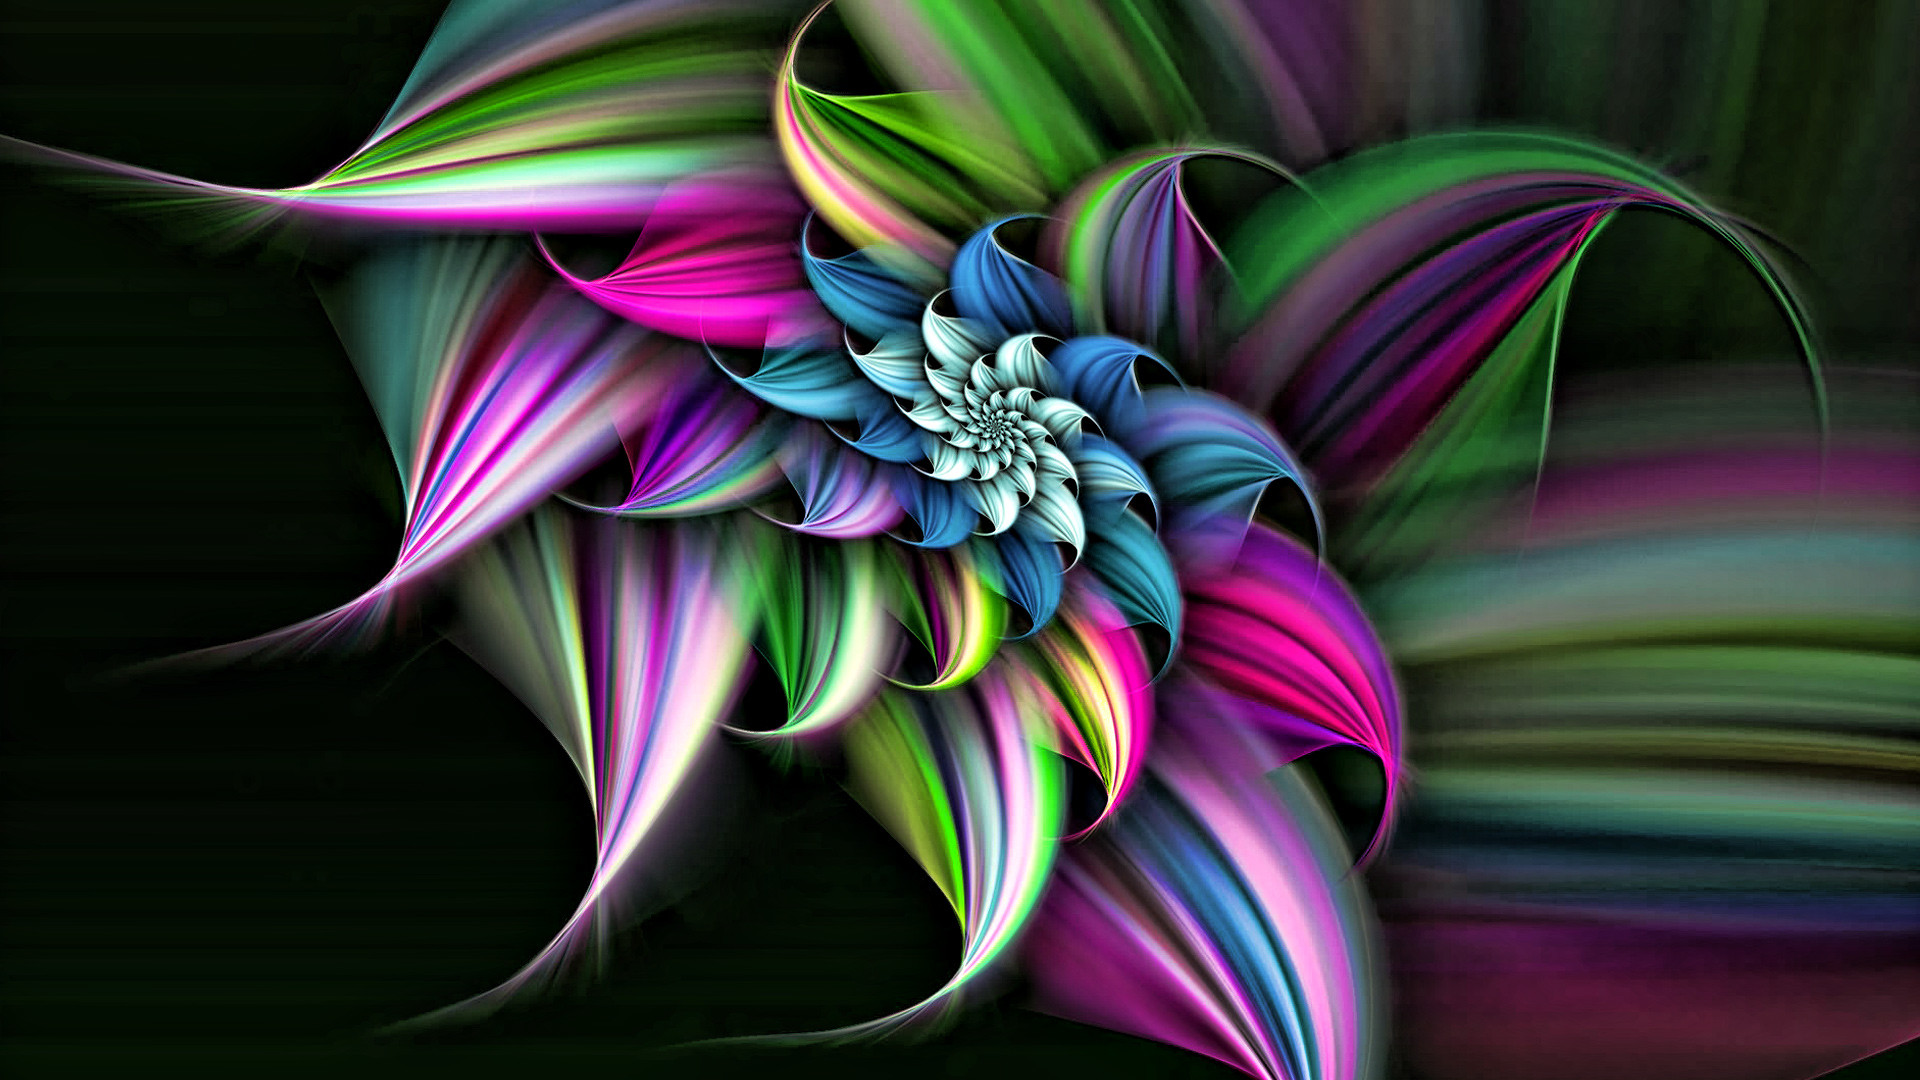 Cool Wallpapers 3d 1080p